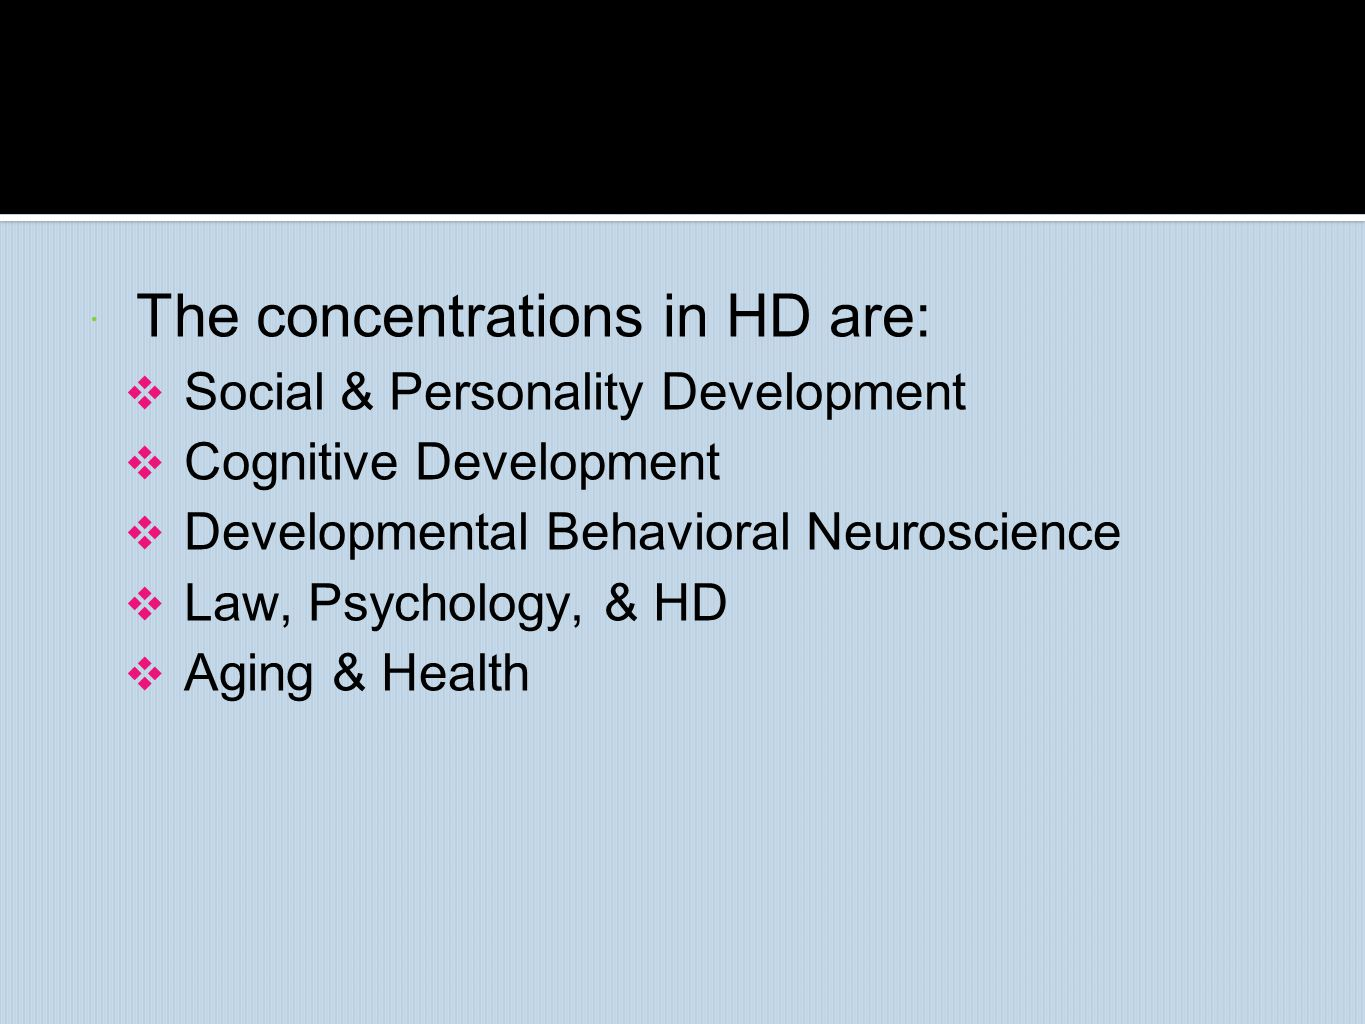  The concentrations in HD are:  Social & Personality Development  Cognitive Development  Developmental Behavioral Neuroscience  Law, Psychology,